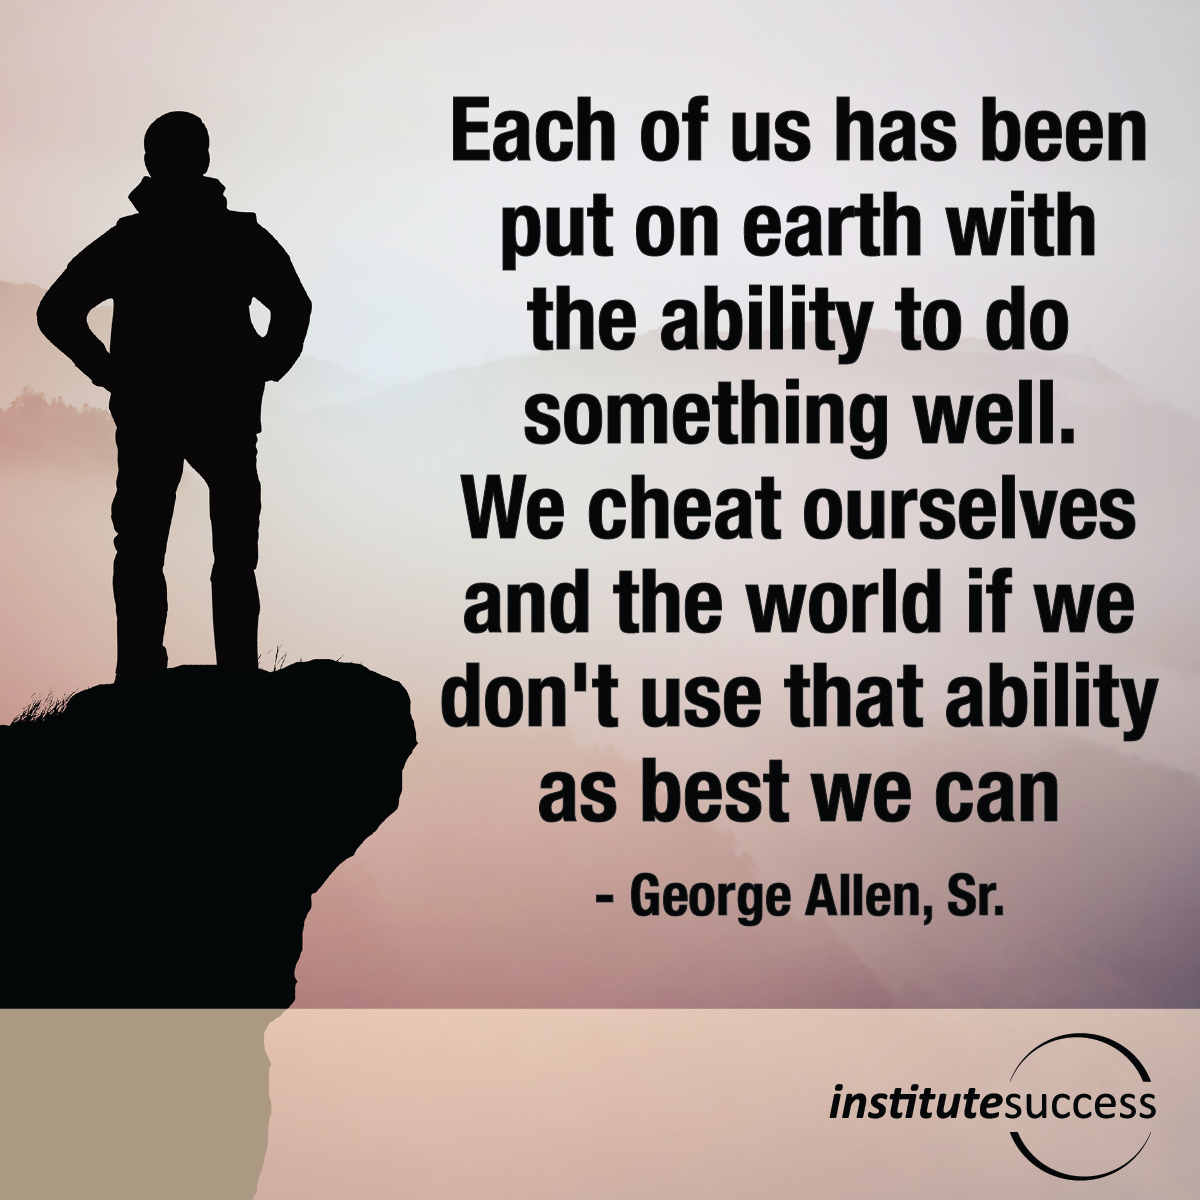 Each of us has been put on earth with the ability to do something well.  We cheat ourselves and the world if we don't use that ability as best we can – George Allen, Sr.